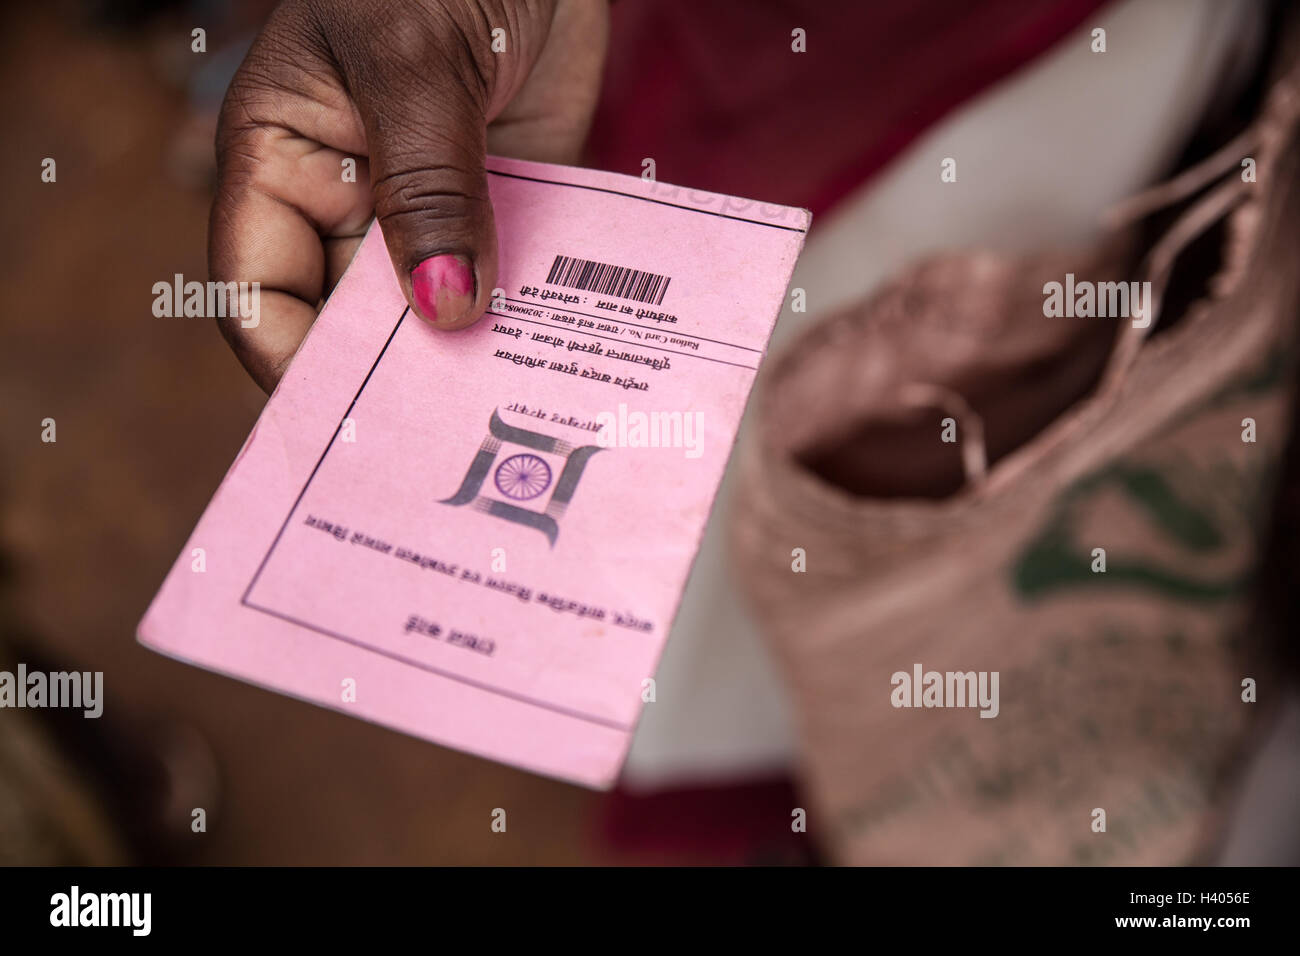 Hand of a woman showing her ration card which allows her to buy highly subsidized rice according to the National - Stock Image